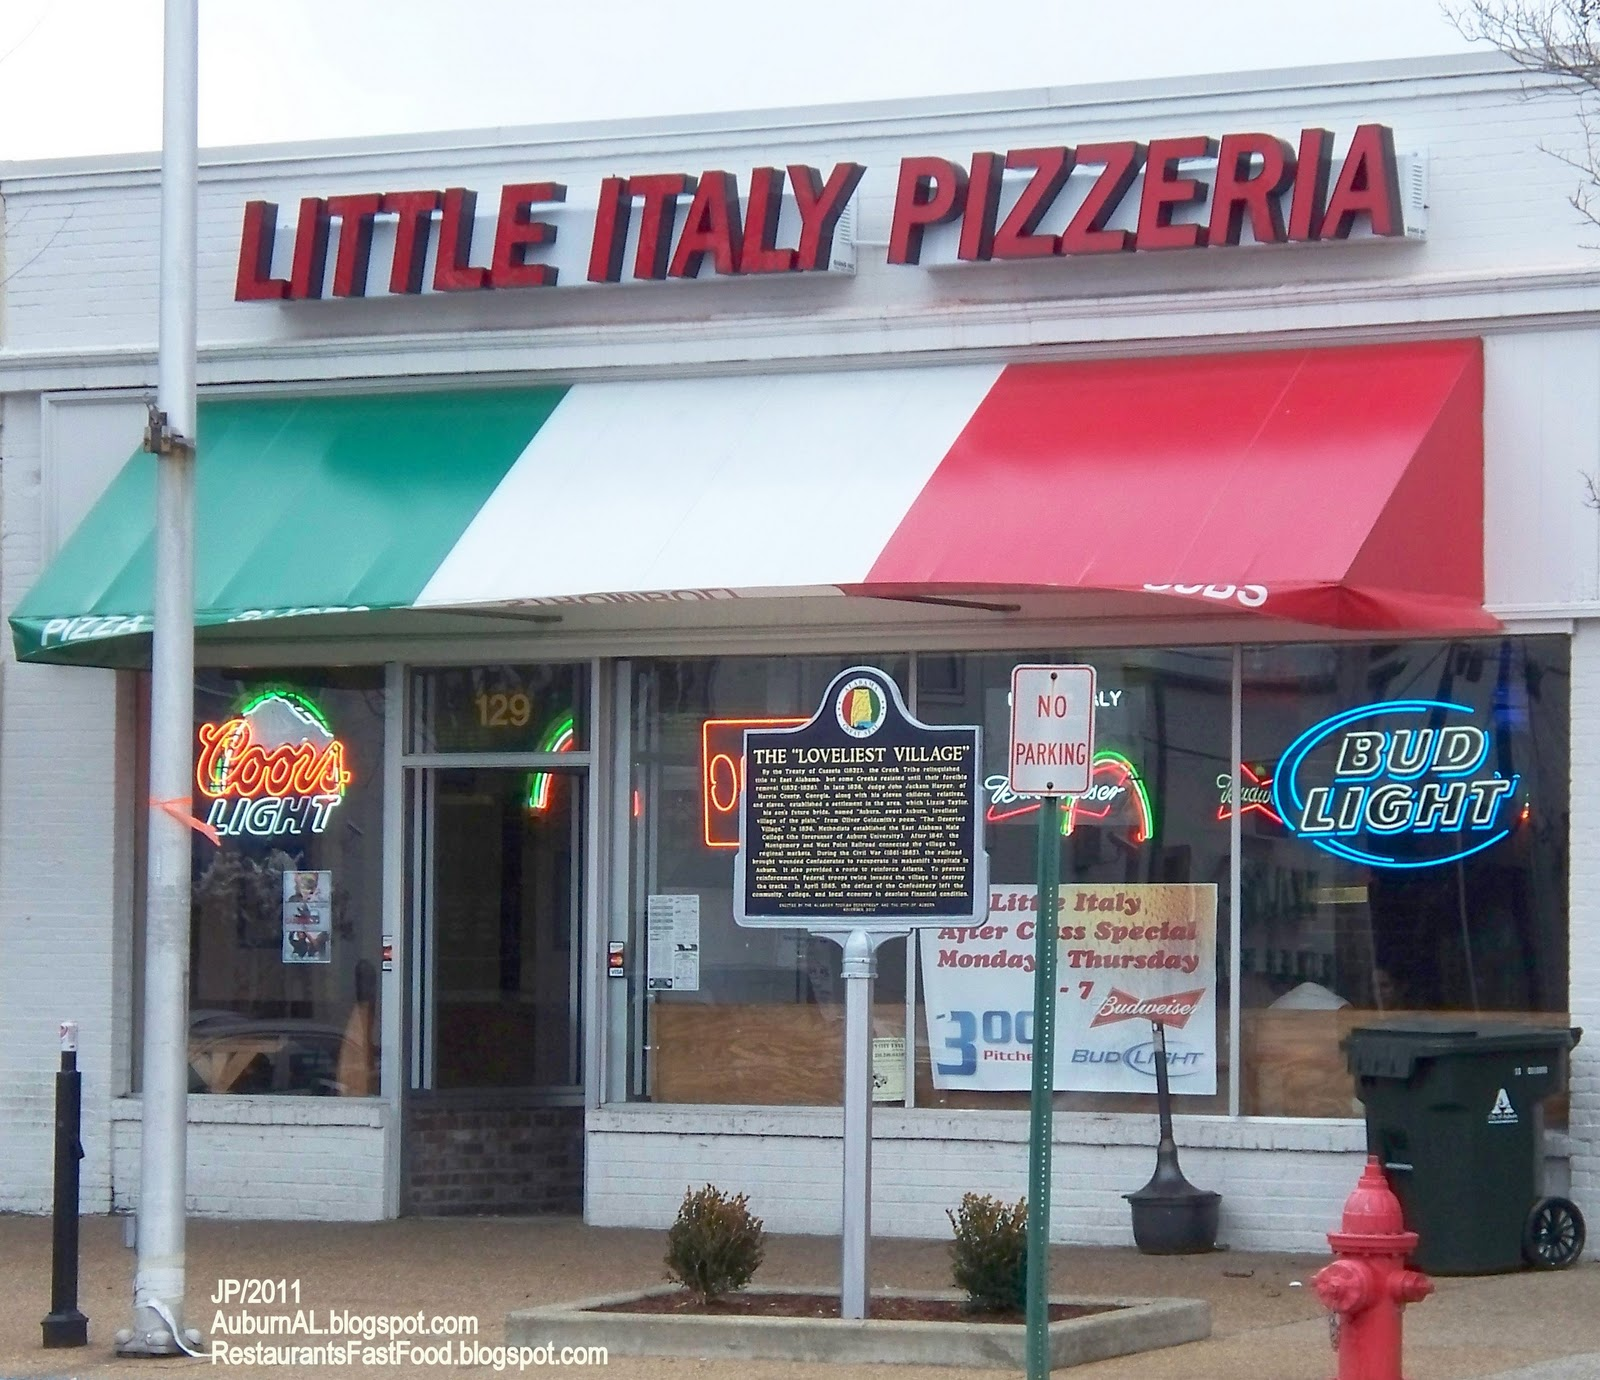 Little Italy Pizza Auburn Alabama East Magnolia Avenue Pizzeria Restaurant Al Beer Slices